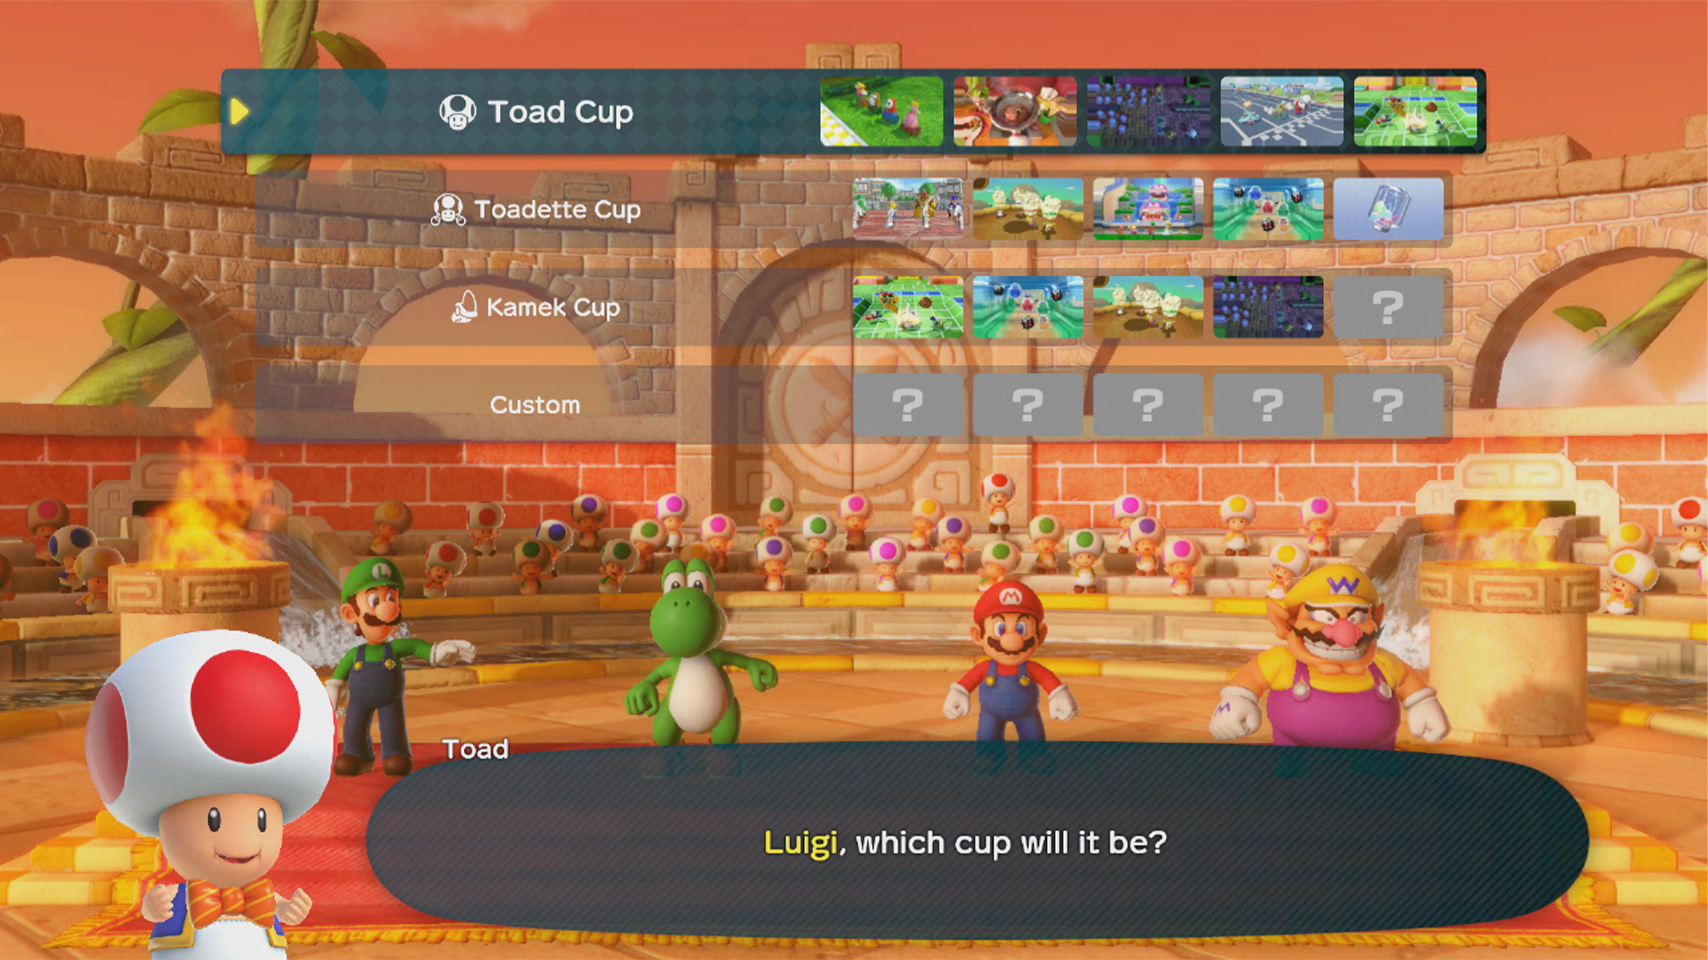 NSwitch_SuperMarioParty_OnlineMariothon_Scr_01.jpg